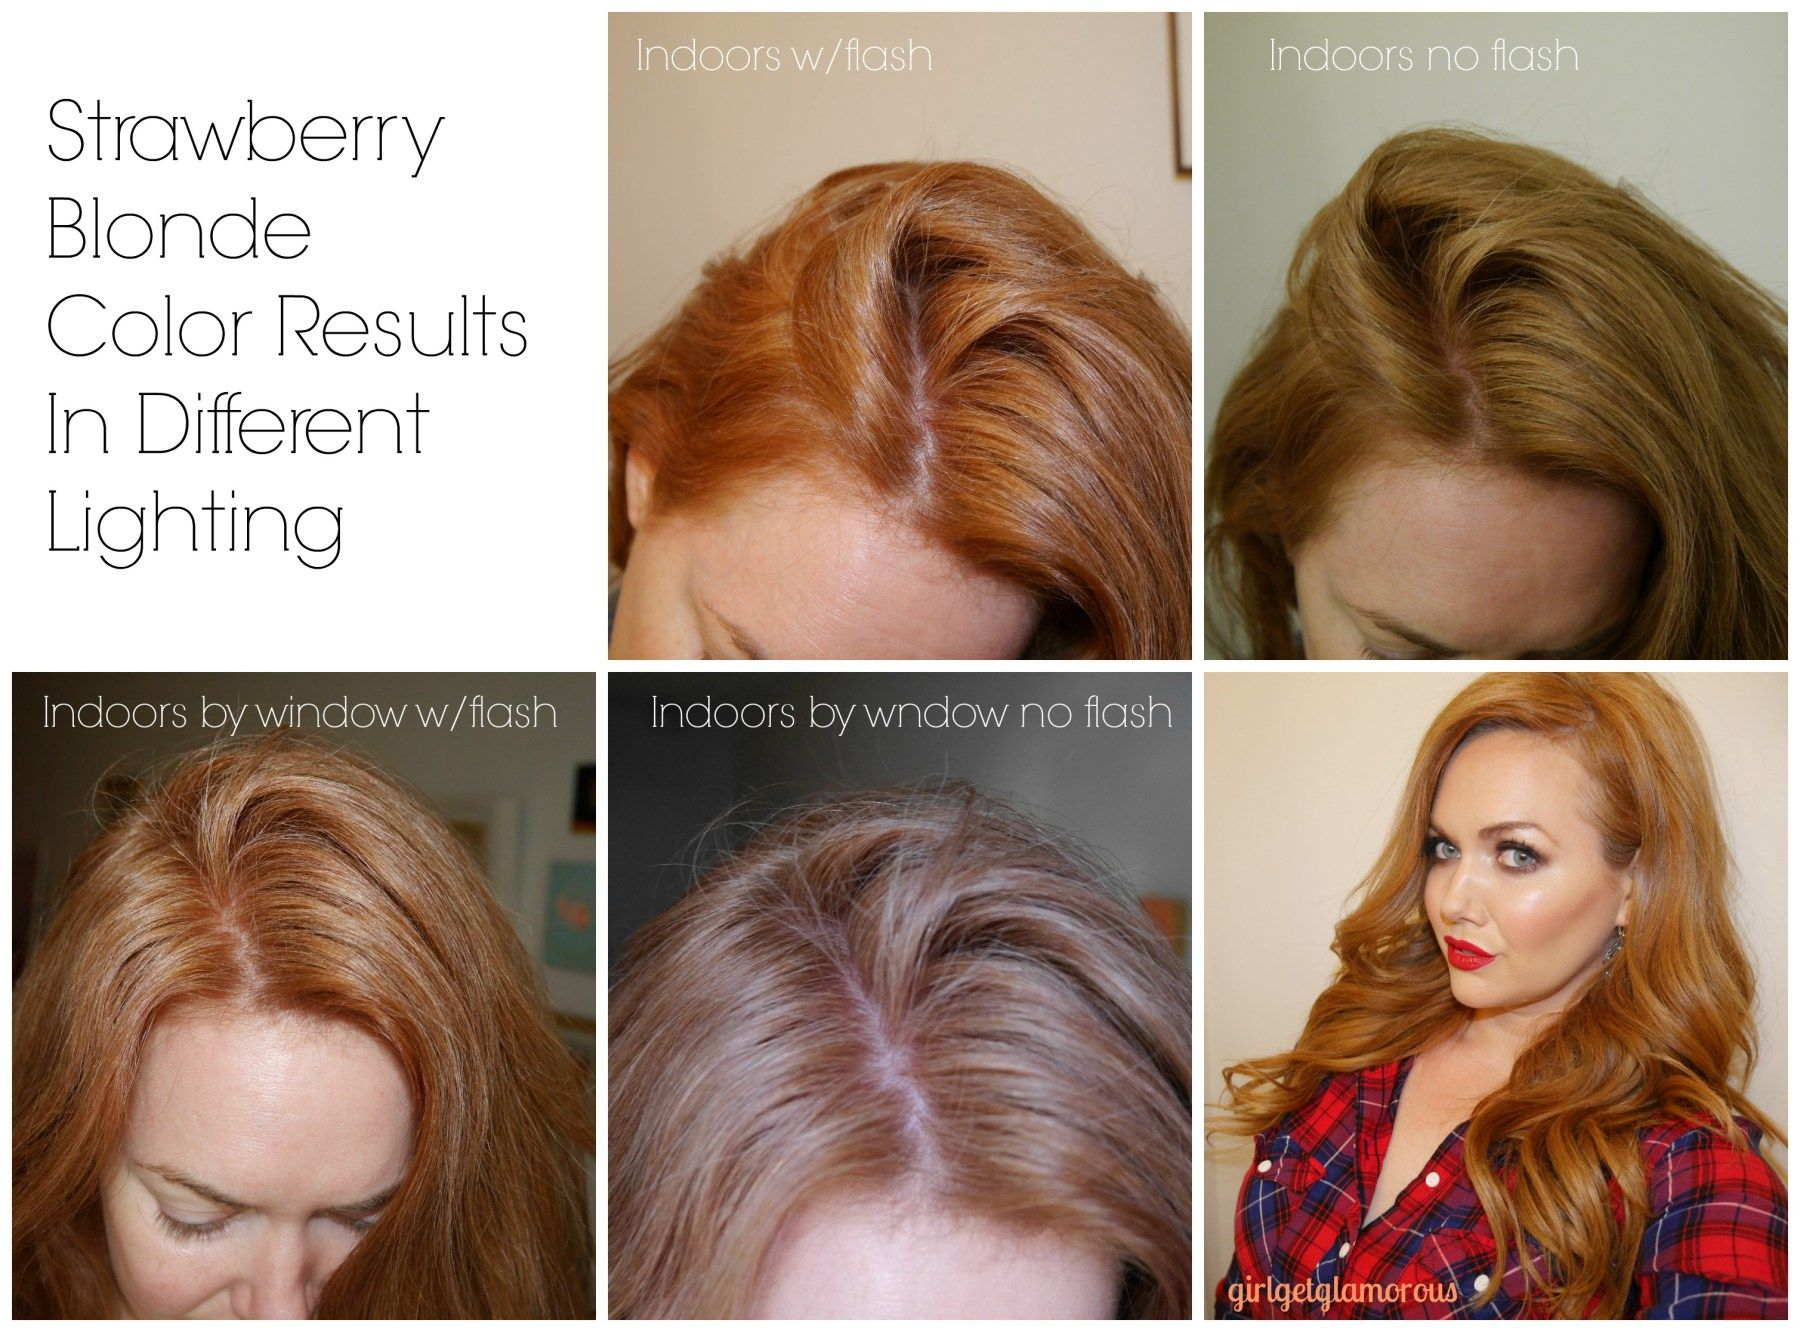 How To Get Strawberry Blonde Hair At Home Diy Guide Part 2 Girlgetglamorous Blonde Hair At Home Strawberry Blonde Hair Light Strawberry Blonde